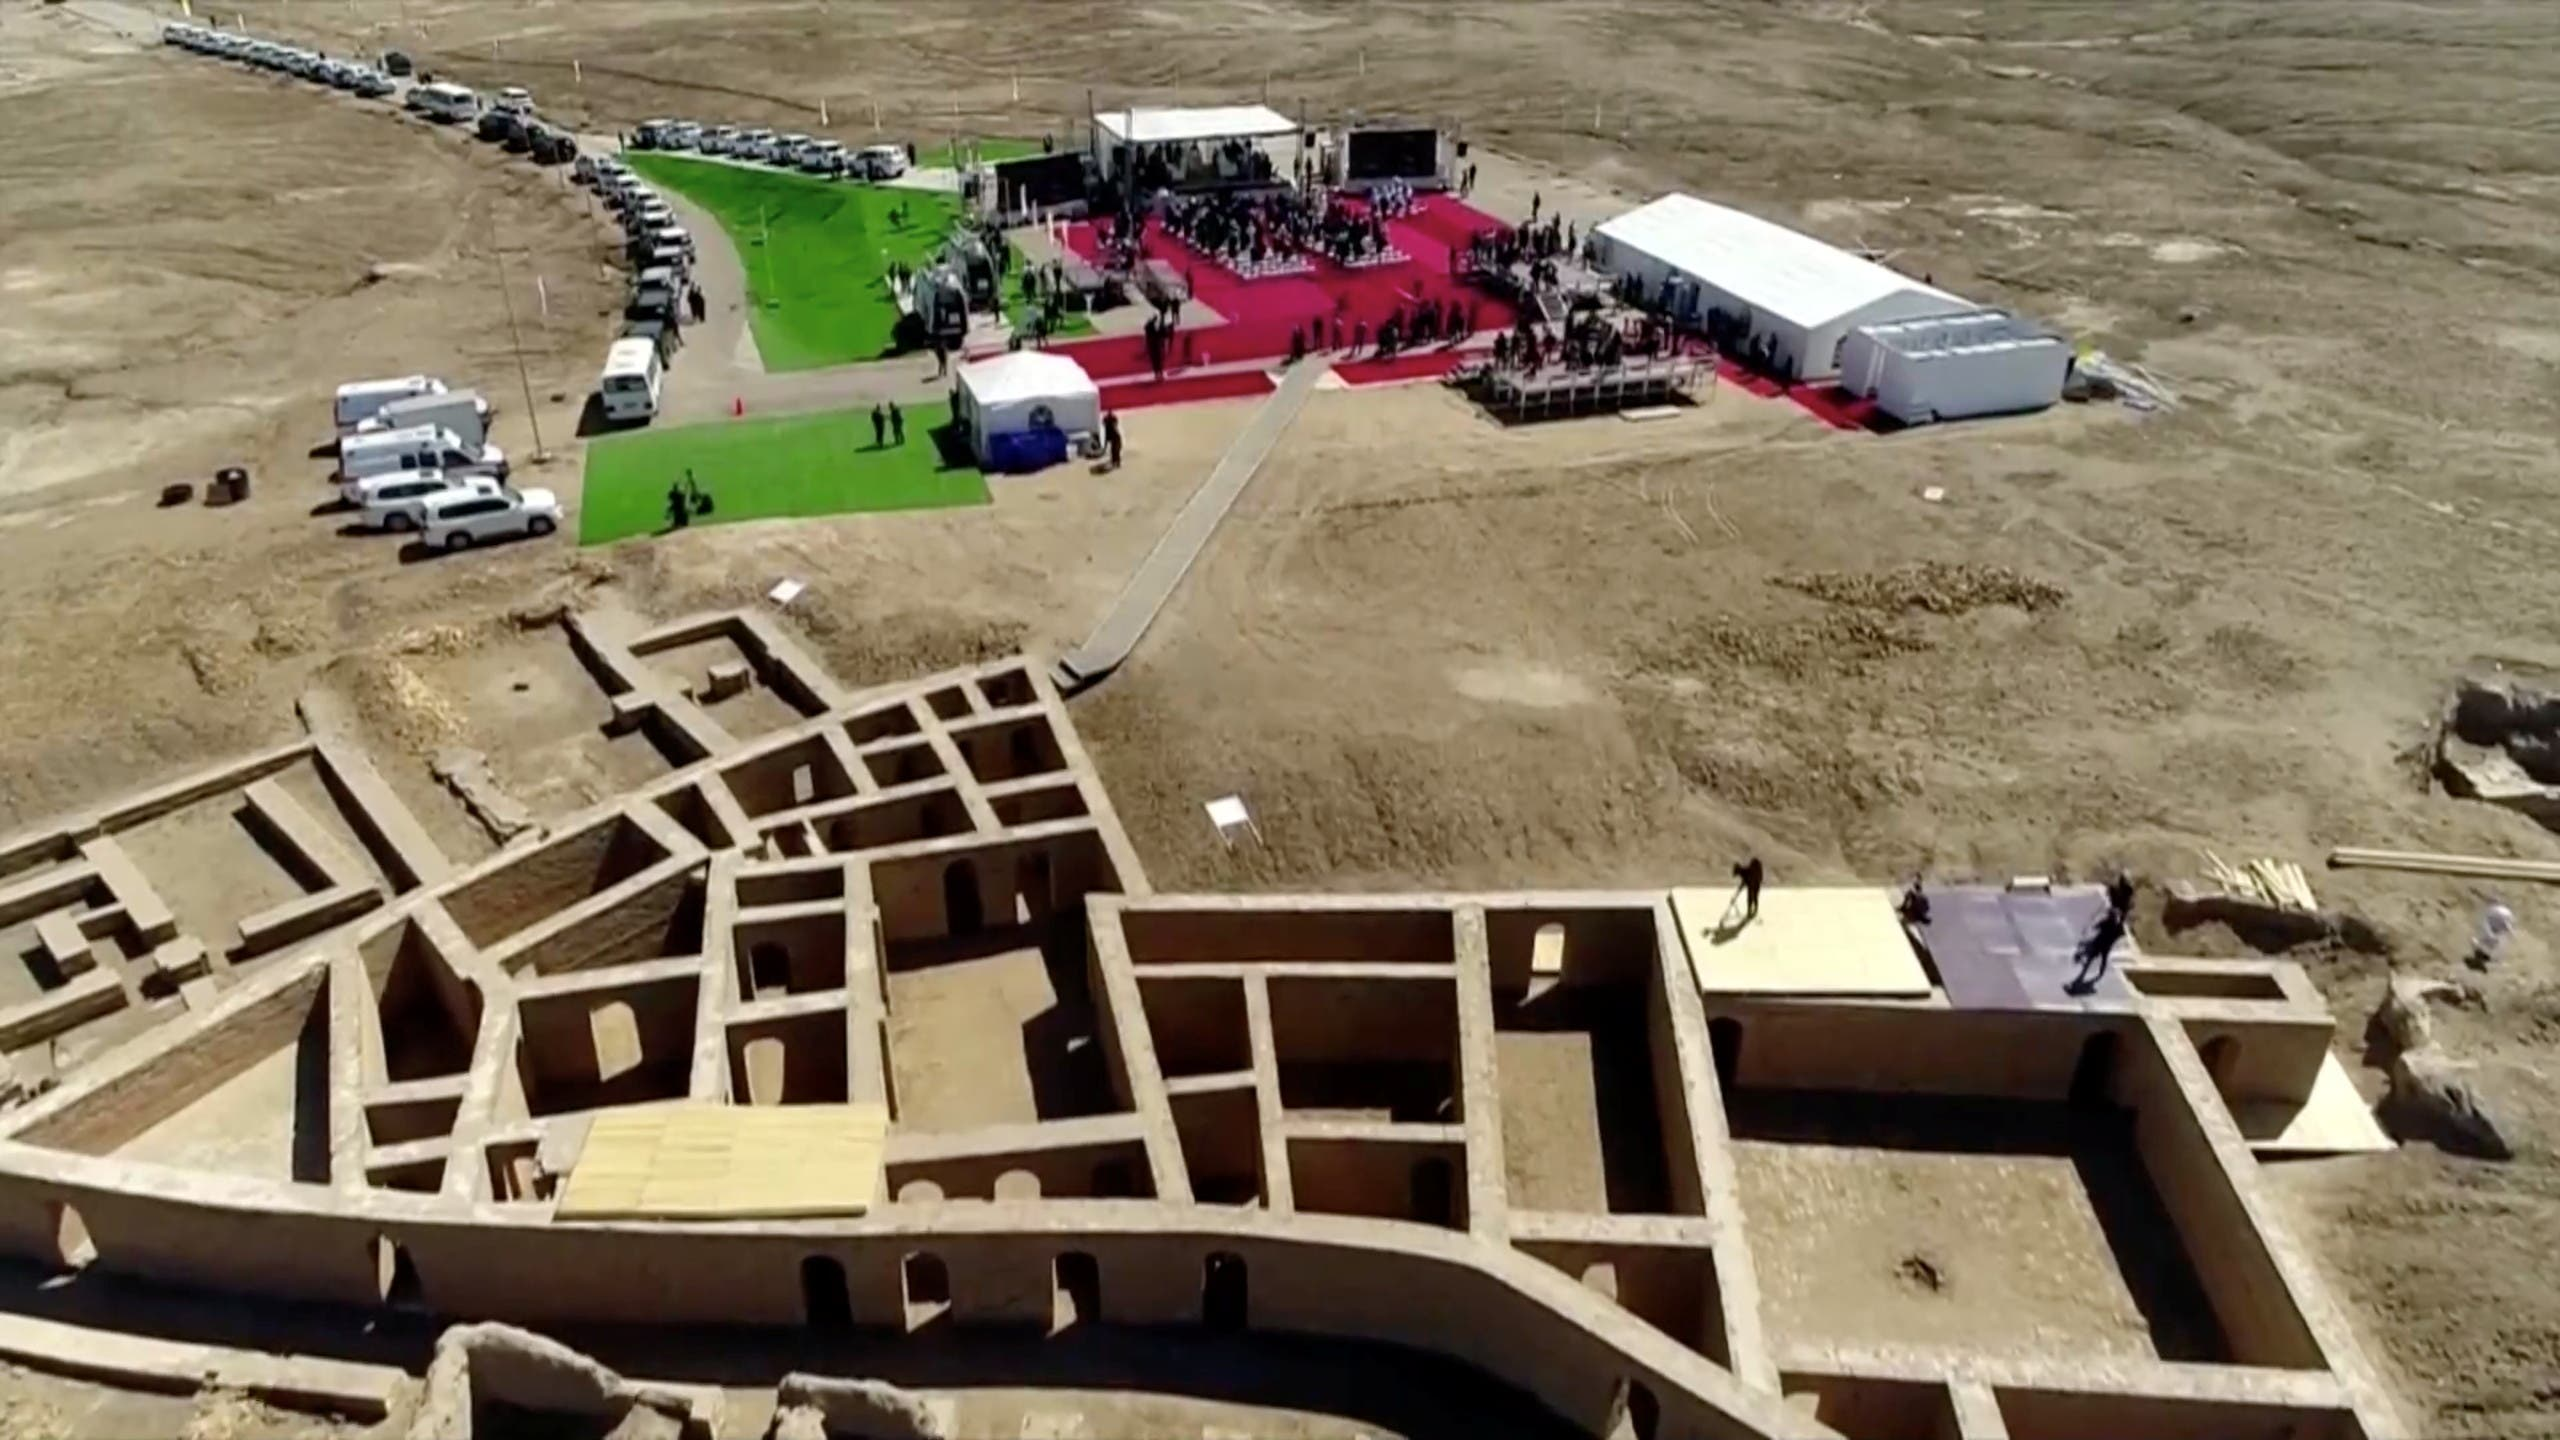 General view of the ancient archeological site of Ur, traditionally believed to be the birthplace of Abraham, in Ur near Nassiriya, Iraq, March 6, 2021 in this screen grab taken from video. (Reuters)